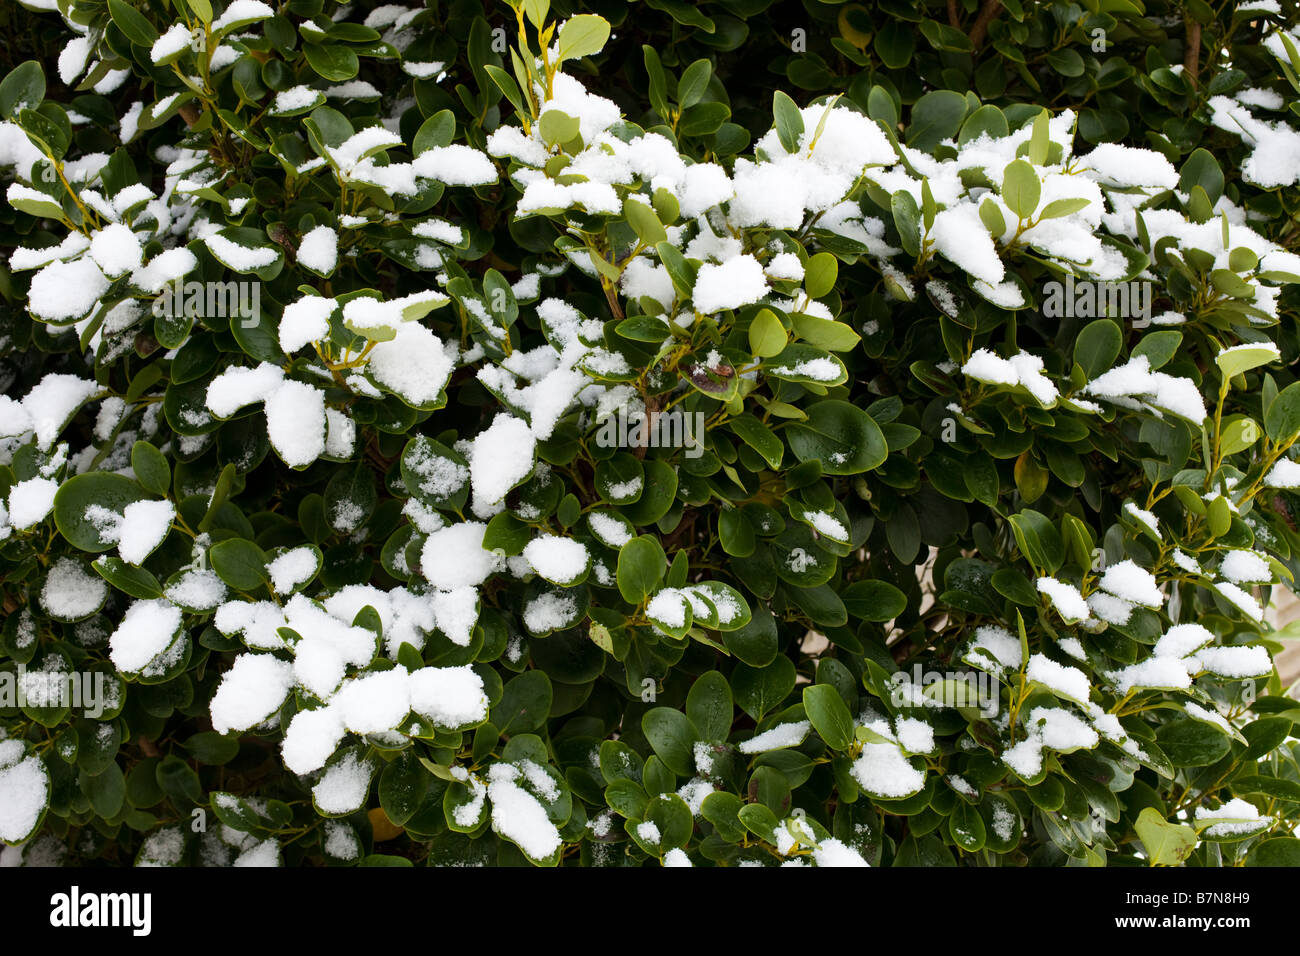 Garden shrub with leaves covered in winter snow - Stock Image